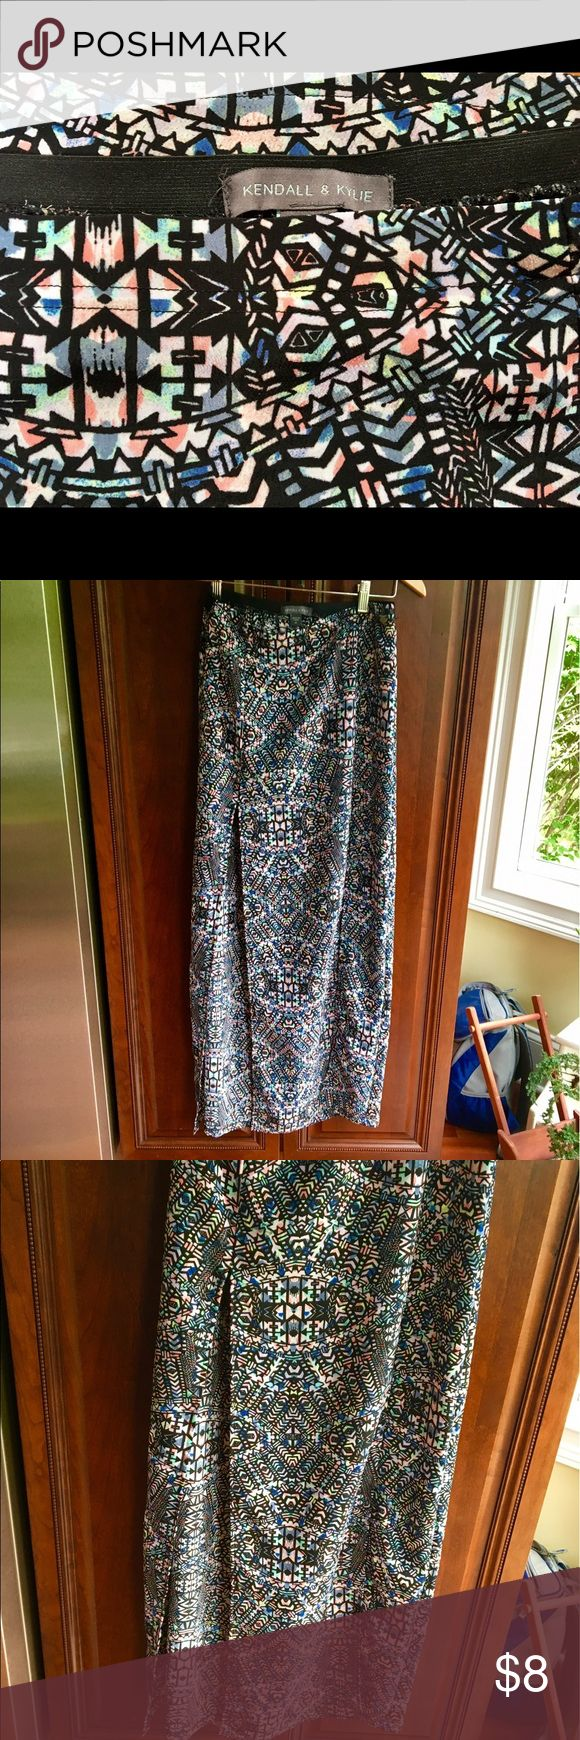 Kendall & Kylie Tribal Maxi Skirt Lightly worn! High waisted fit. Mid-thigh slits on either side make this skirt perfect for a date night. Kendall & Kylie Skirts Maxi